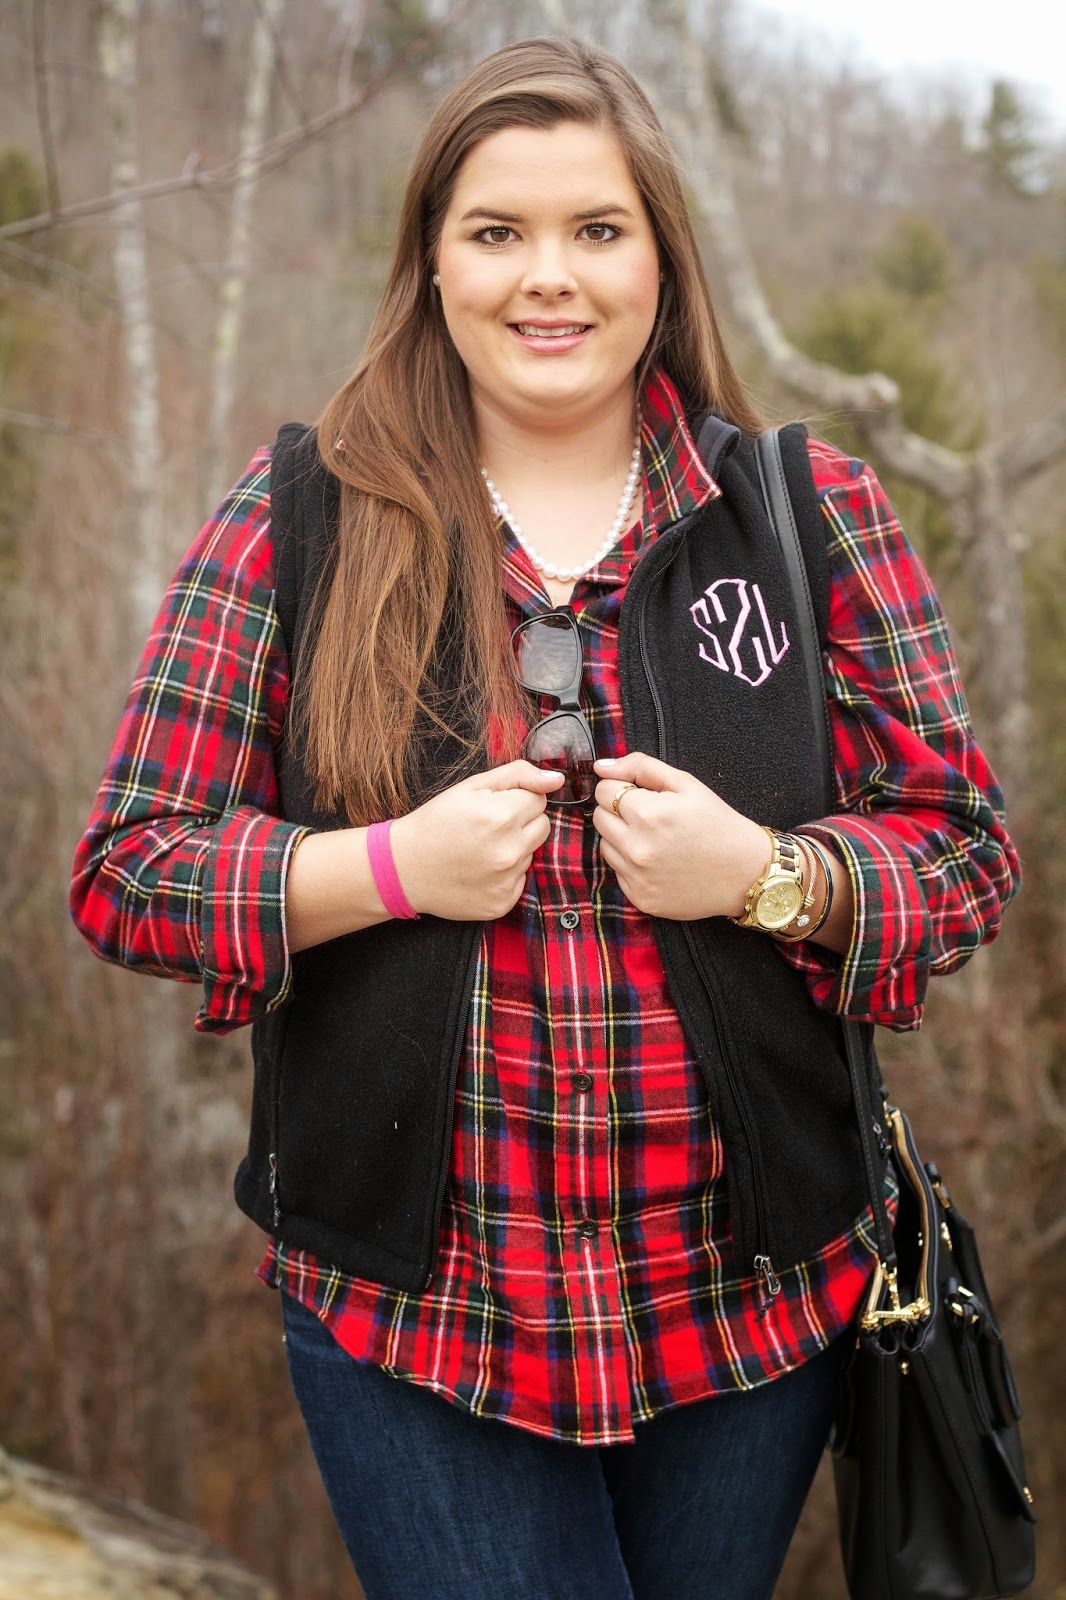 Flannel with jeans and boots  LLBean plaid flannel shirt Marley Lilly monogrammed vest Tory